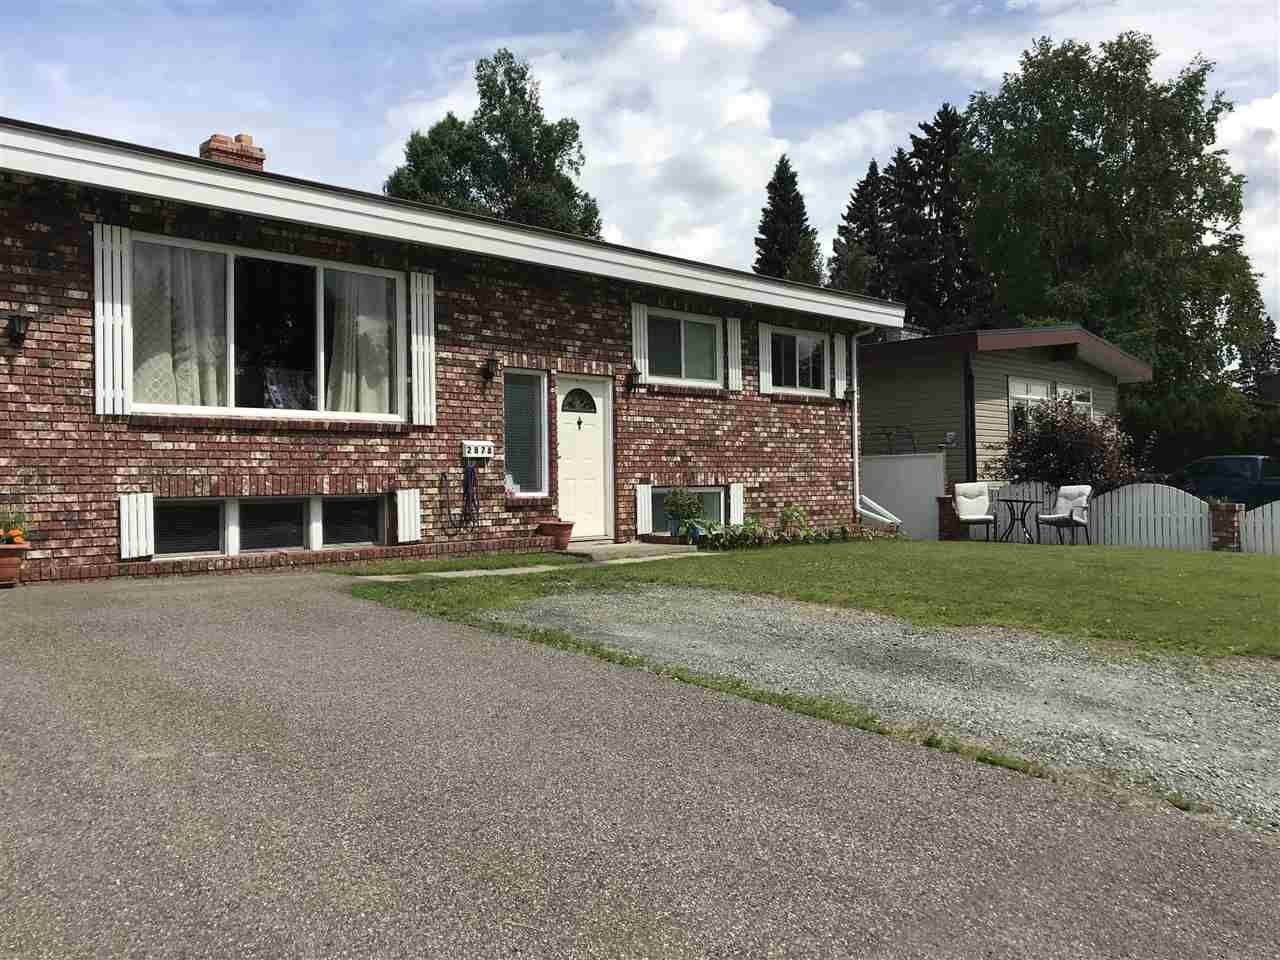 Main Photo: 2878 PINEWOOD Avenue in Prince George: Westwood House for sale (PG City West (Zone 71))  : MLS®# R2382366